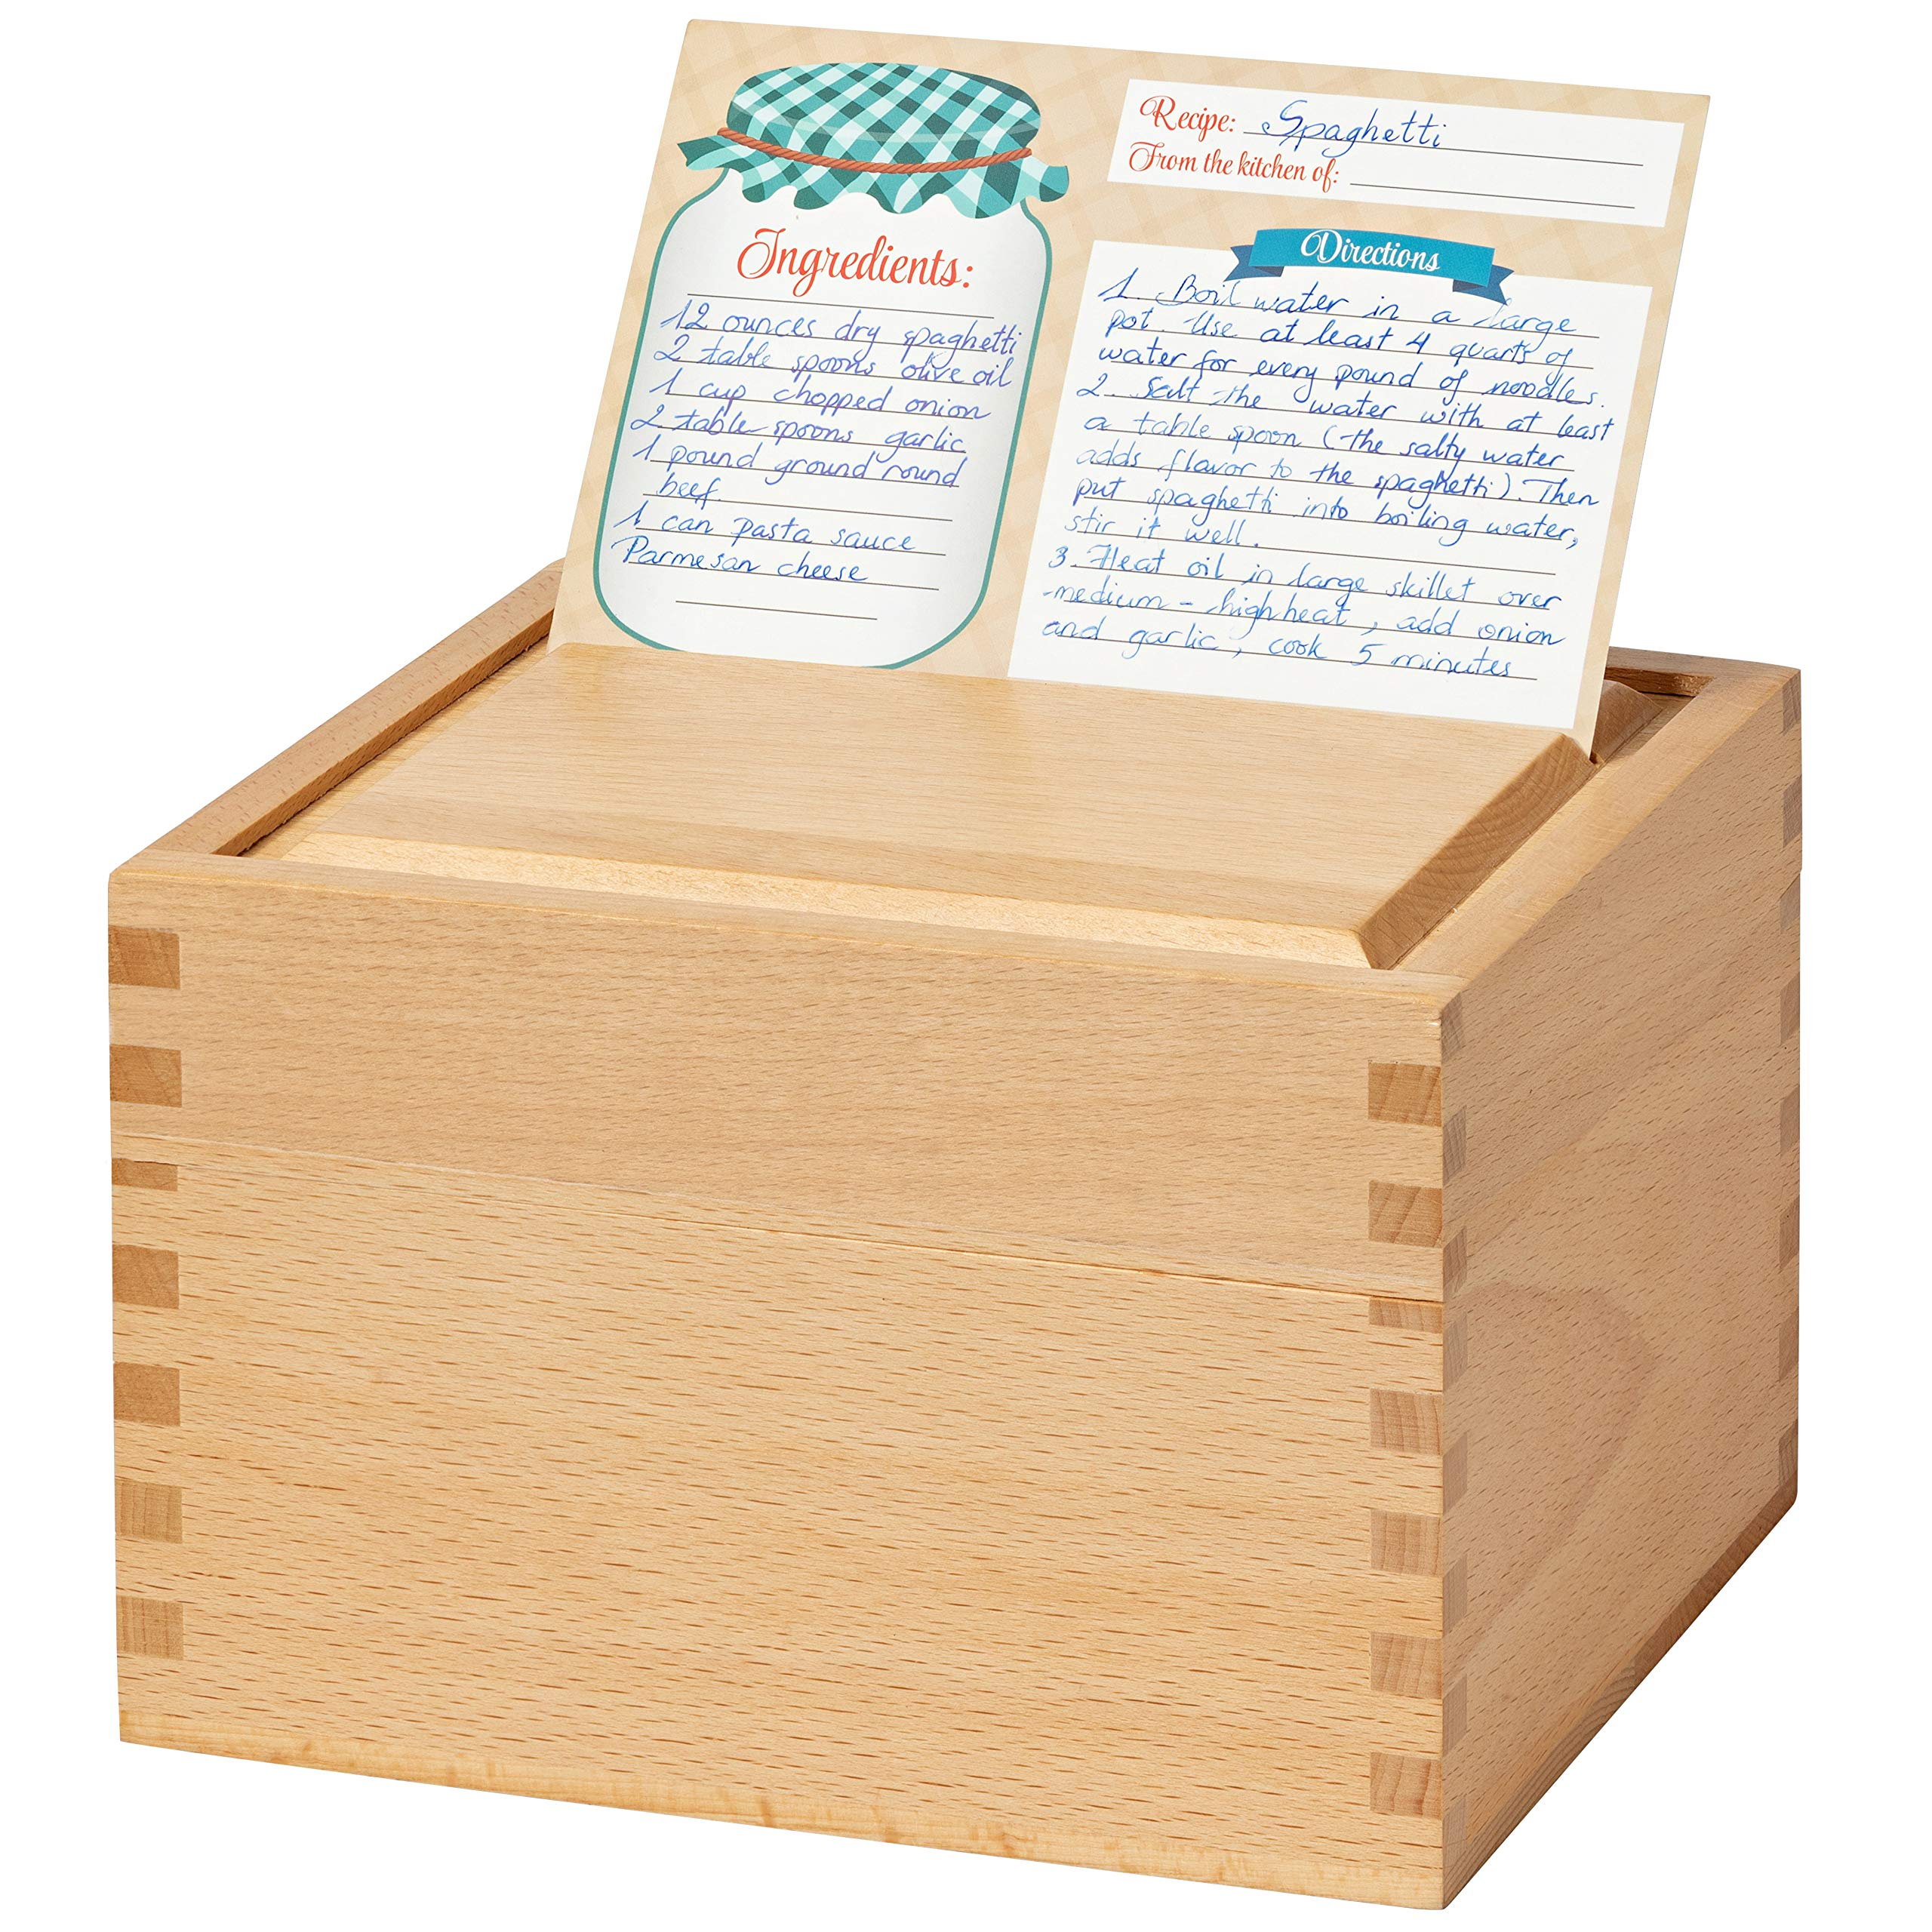 Recipe Box Card Set with 8 4x6 Recipe Cards, Beechwood and Card Holder, Cards Made with Thick Card Stock. Perfect Recipe Organizer. (Beechwood) by RAKYTO (Image #3)